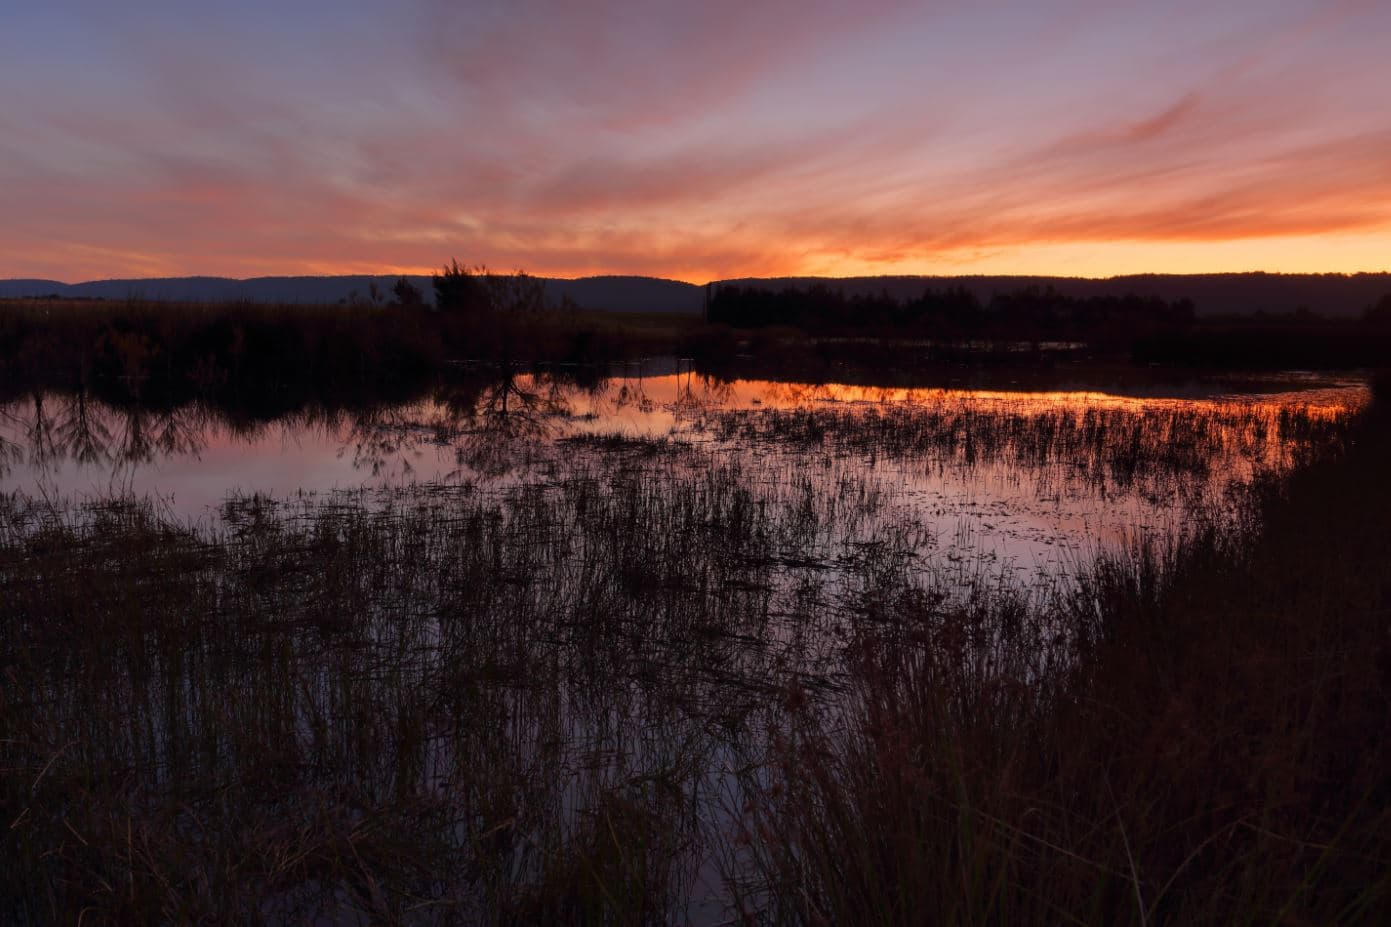 Sunset shot of the Penrith Wetlands in Australia